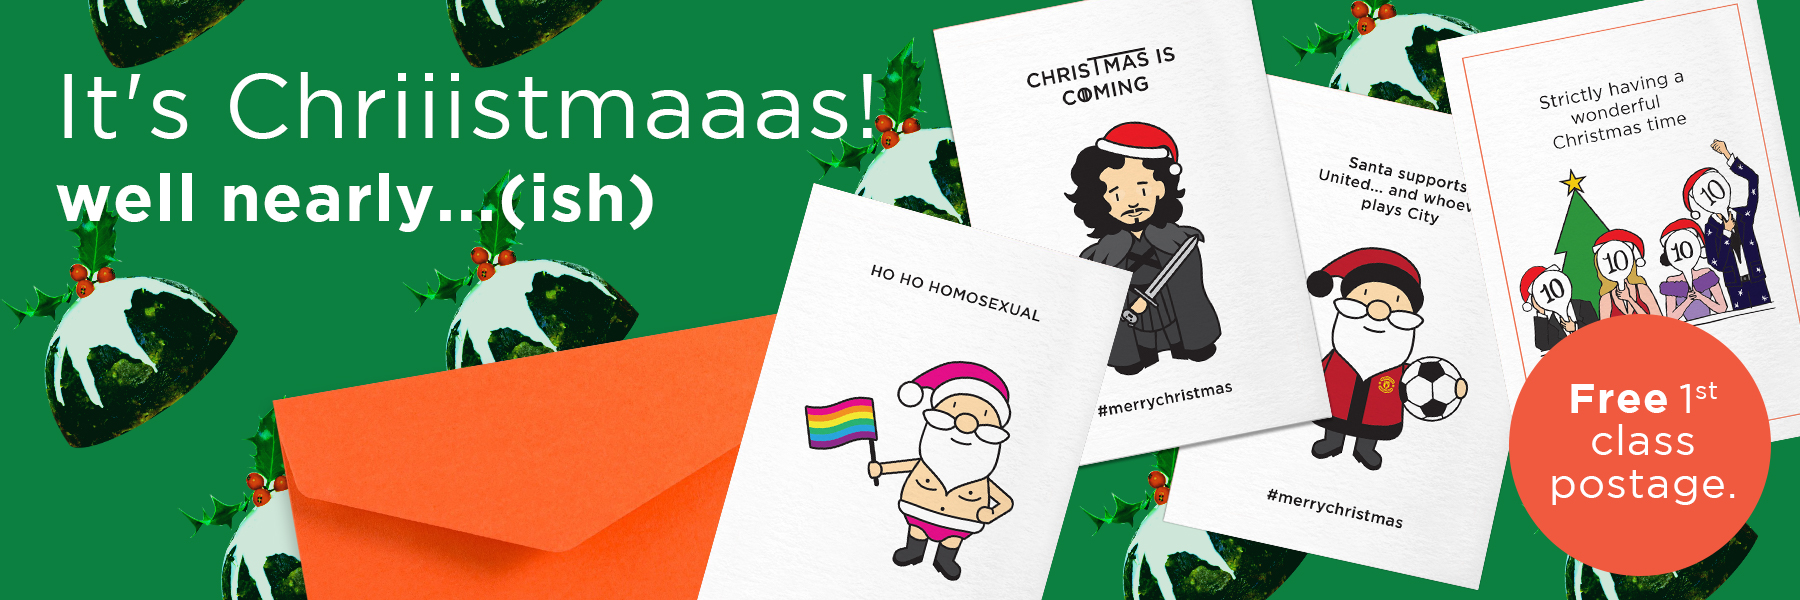 Offensive Christmas Cards | Rude, Funny Cards